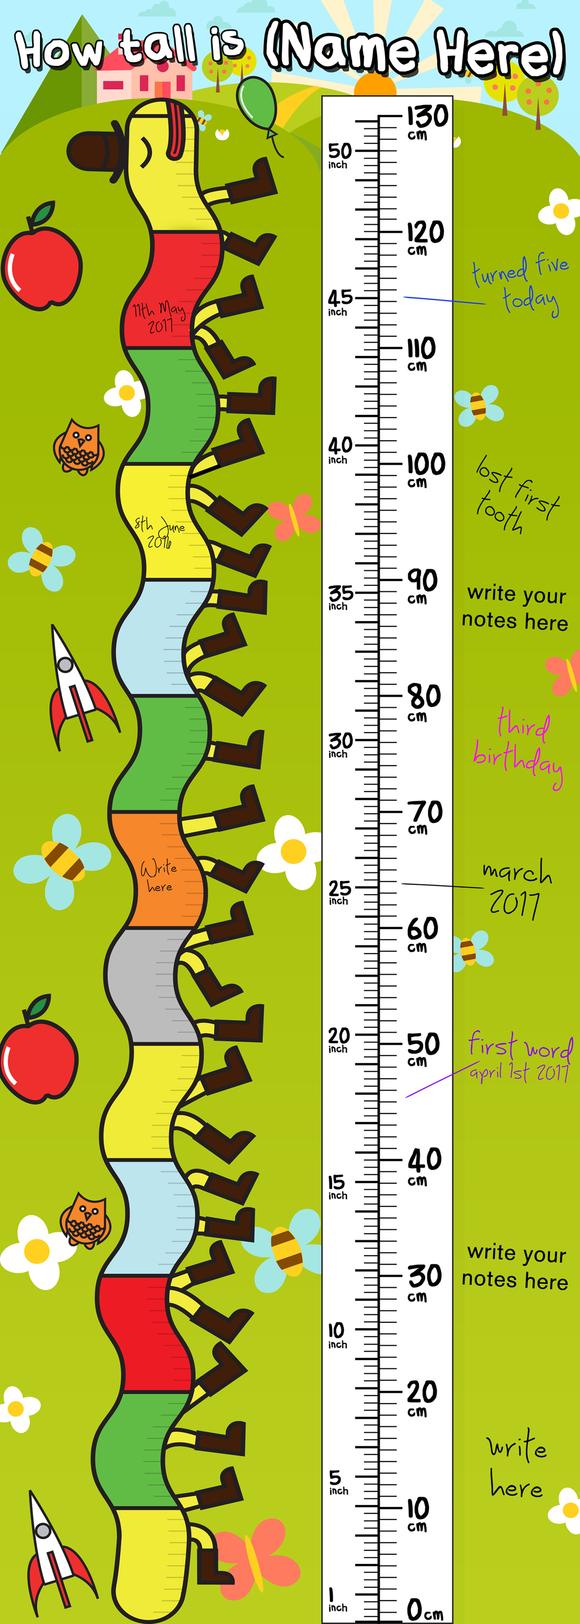 Personalised Children's Caterpillar Height Chart - From 0-130 cm High